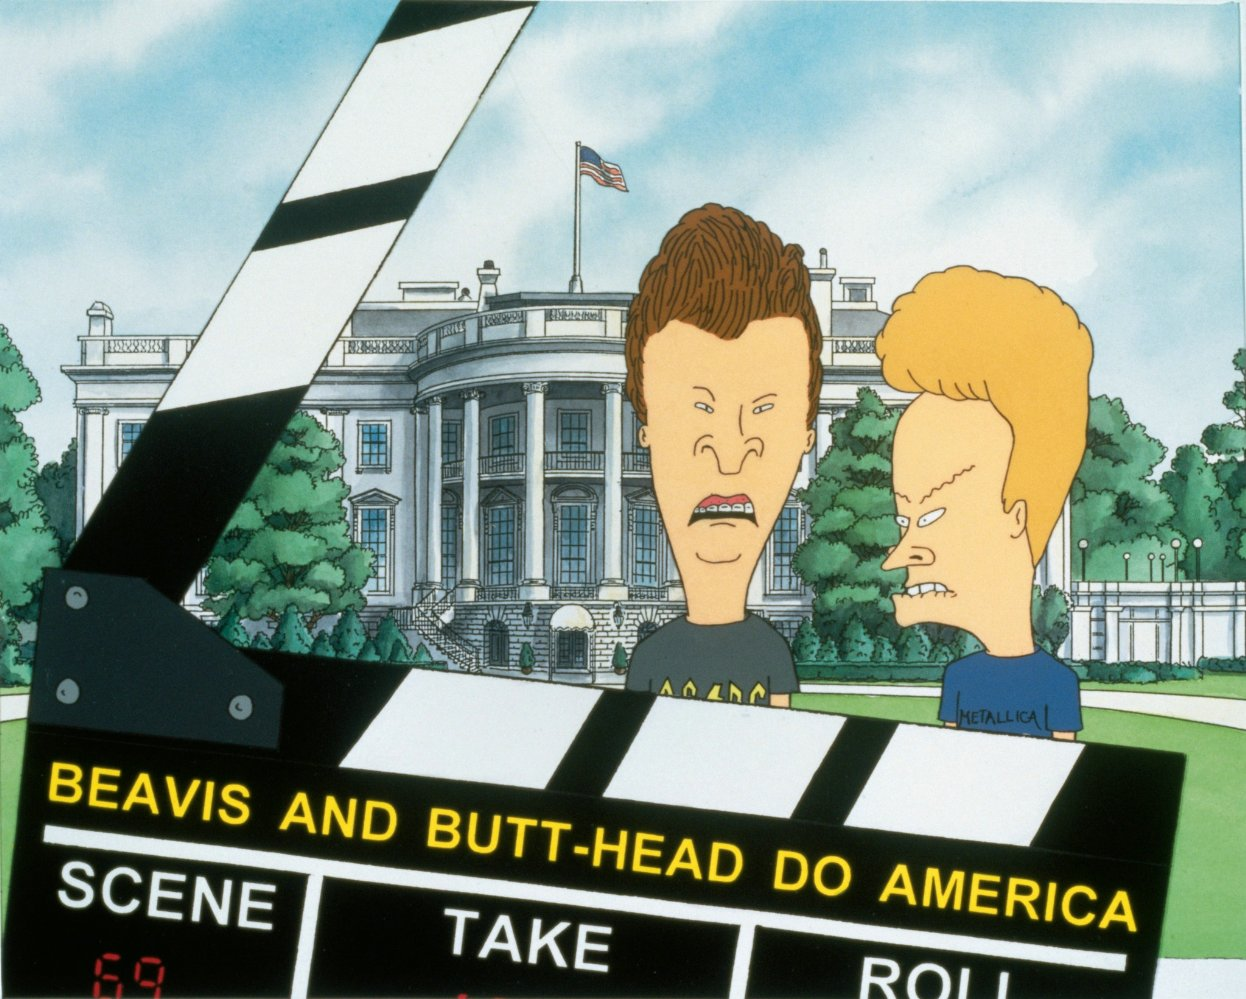 Beavis and Butt Head Do America